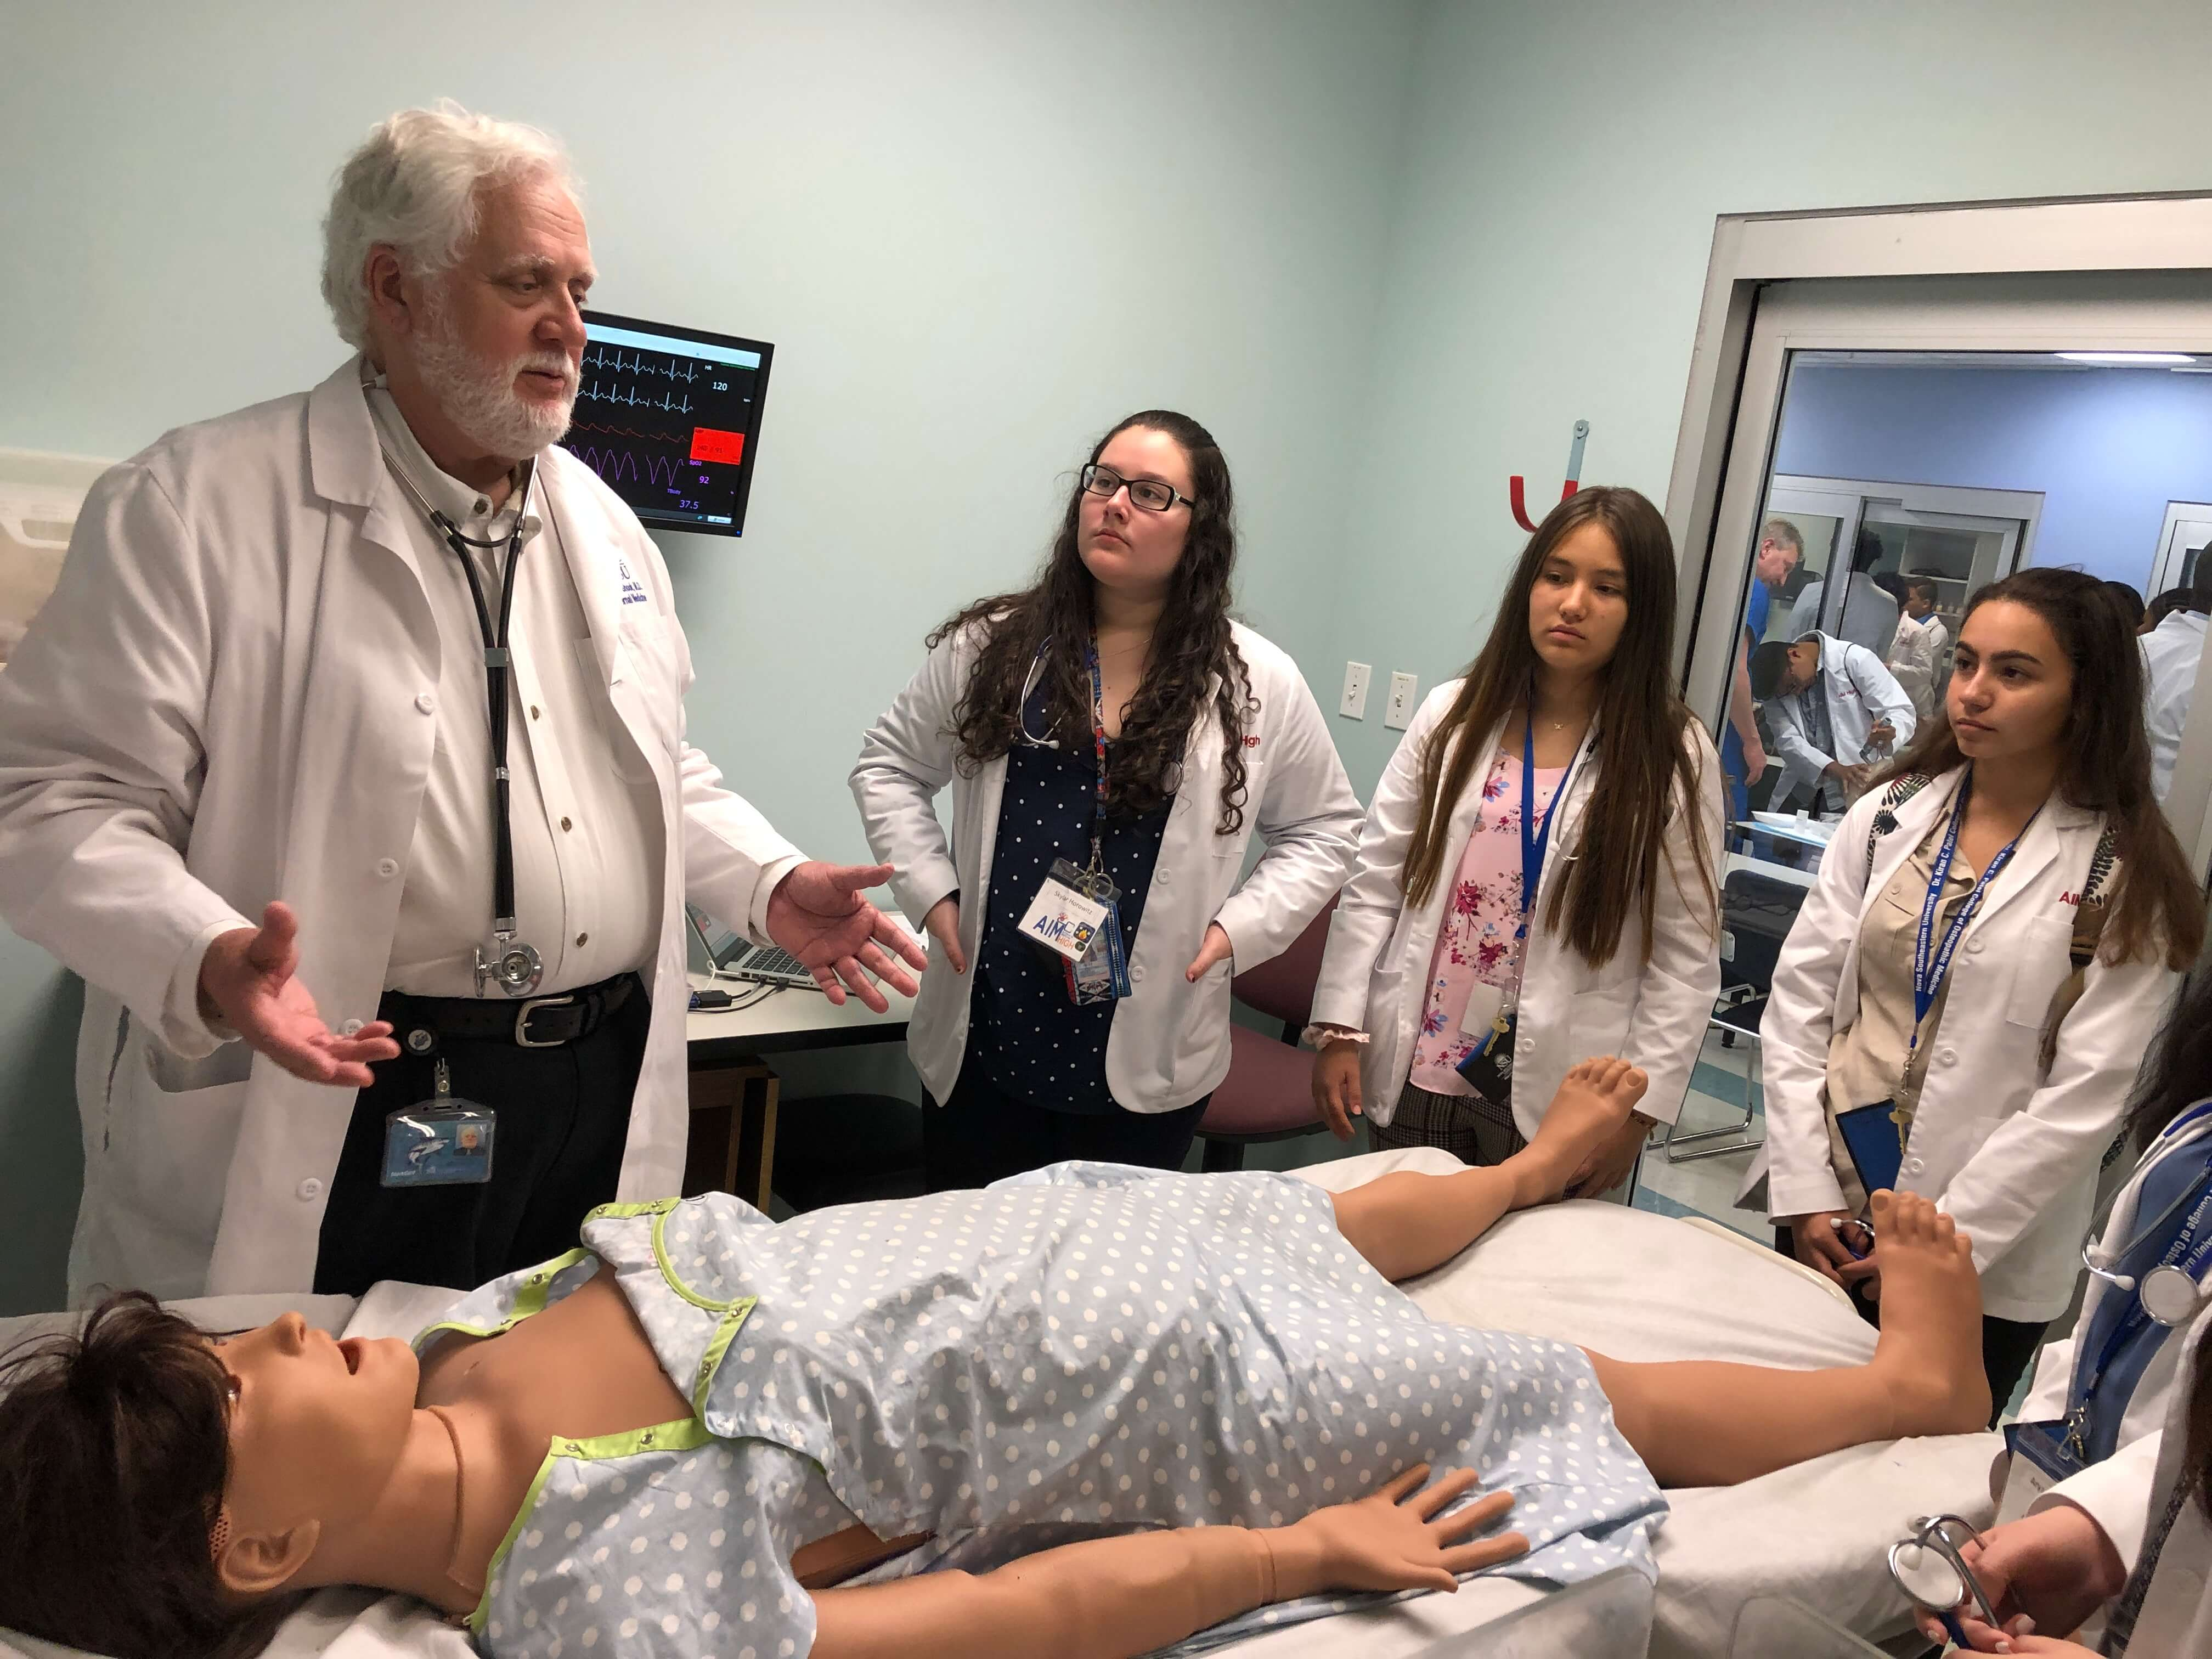 Summer Program - Pre-Med | NSU: AIM-High Medical Immersion Program